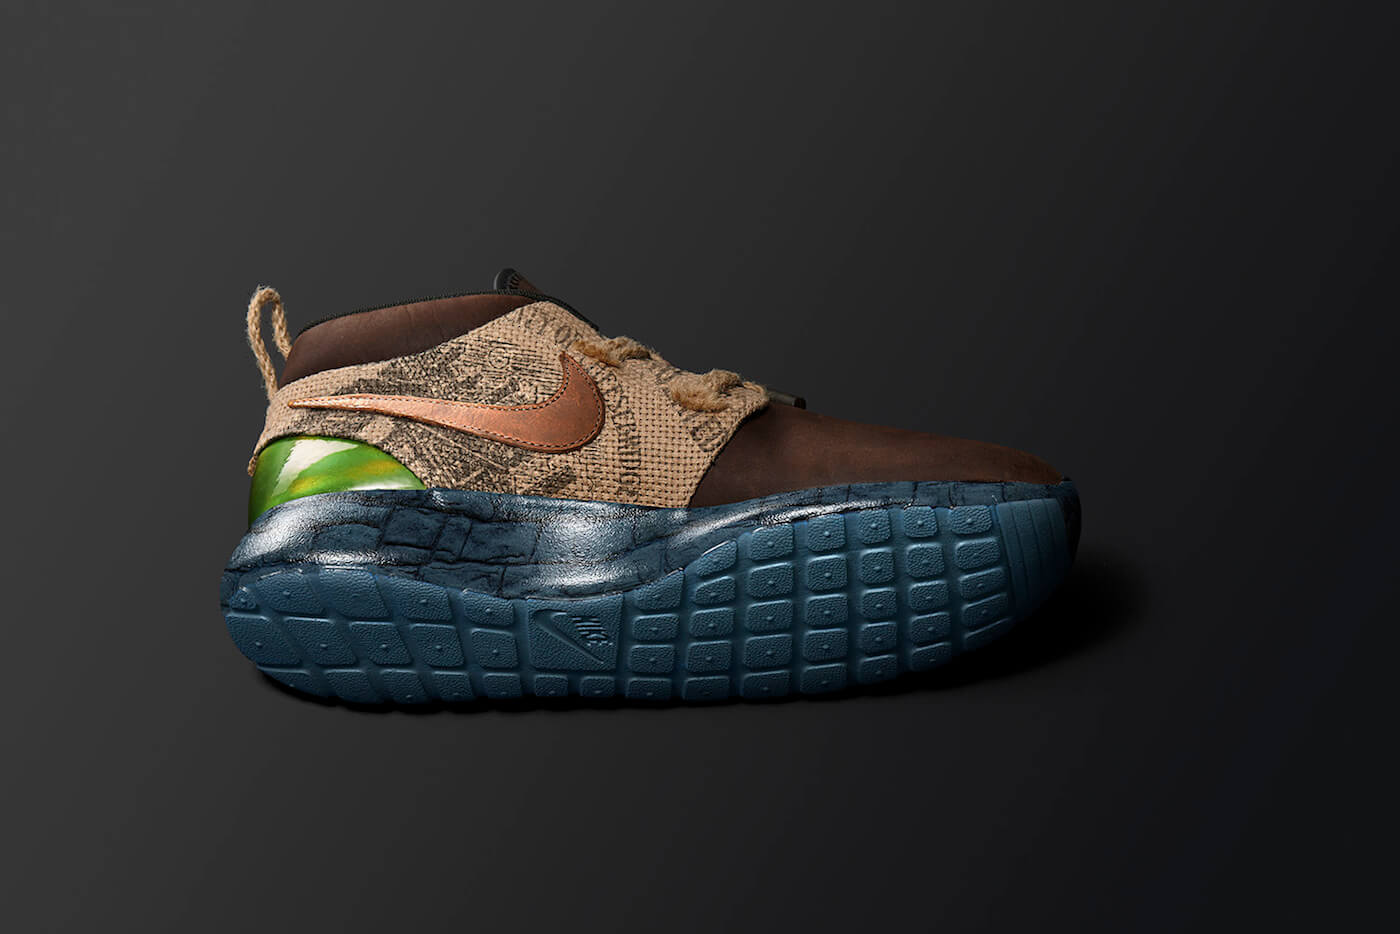 Laika nike shoes the boxtrolls 5